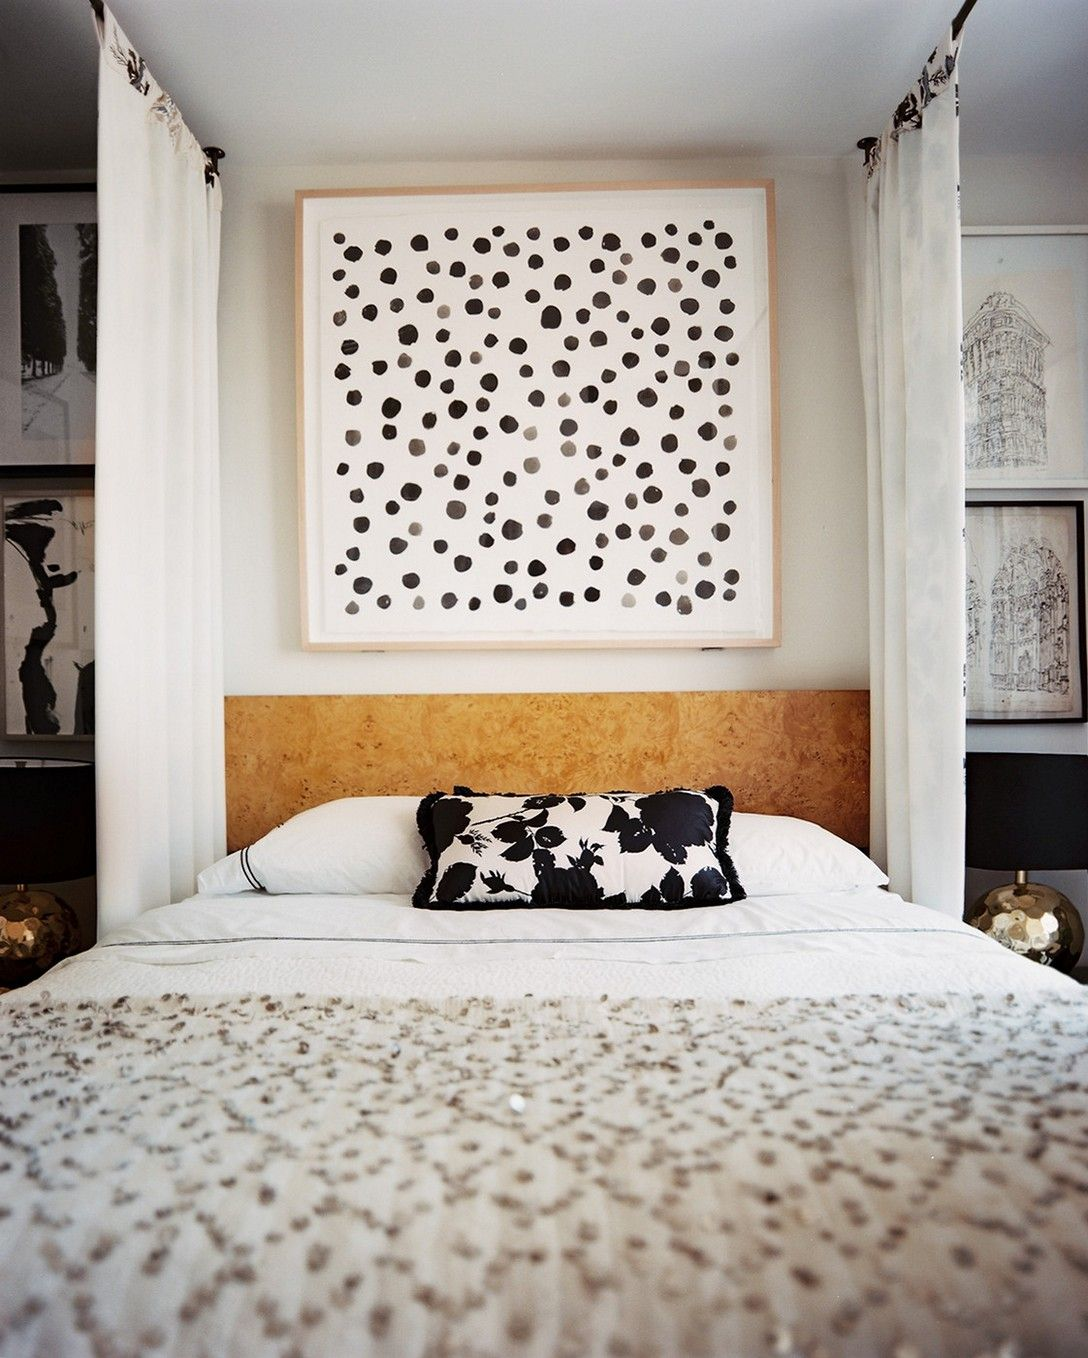 Diy canopy bed without drilling home ideas bedroom bed canopy